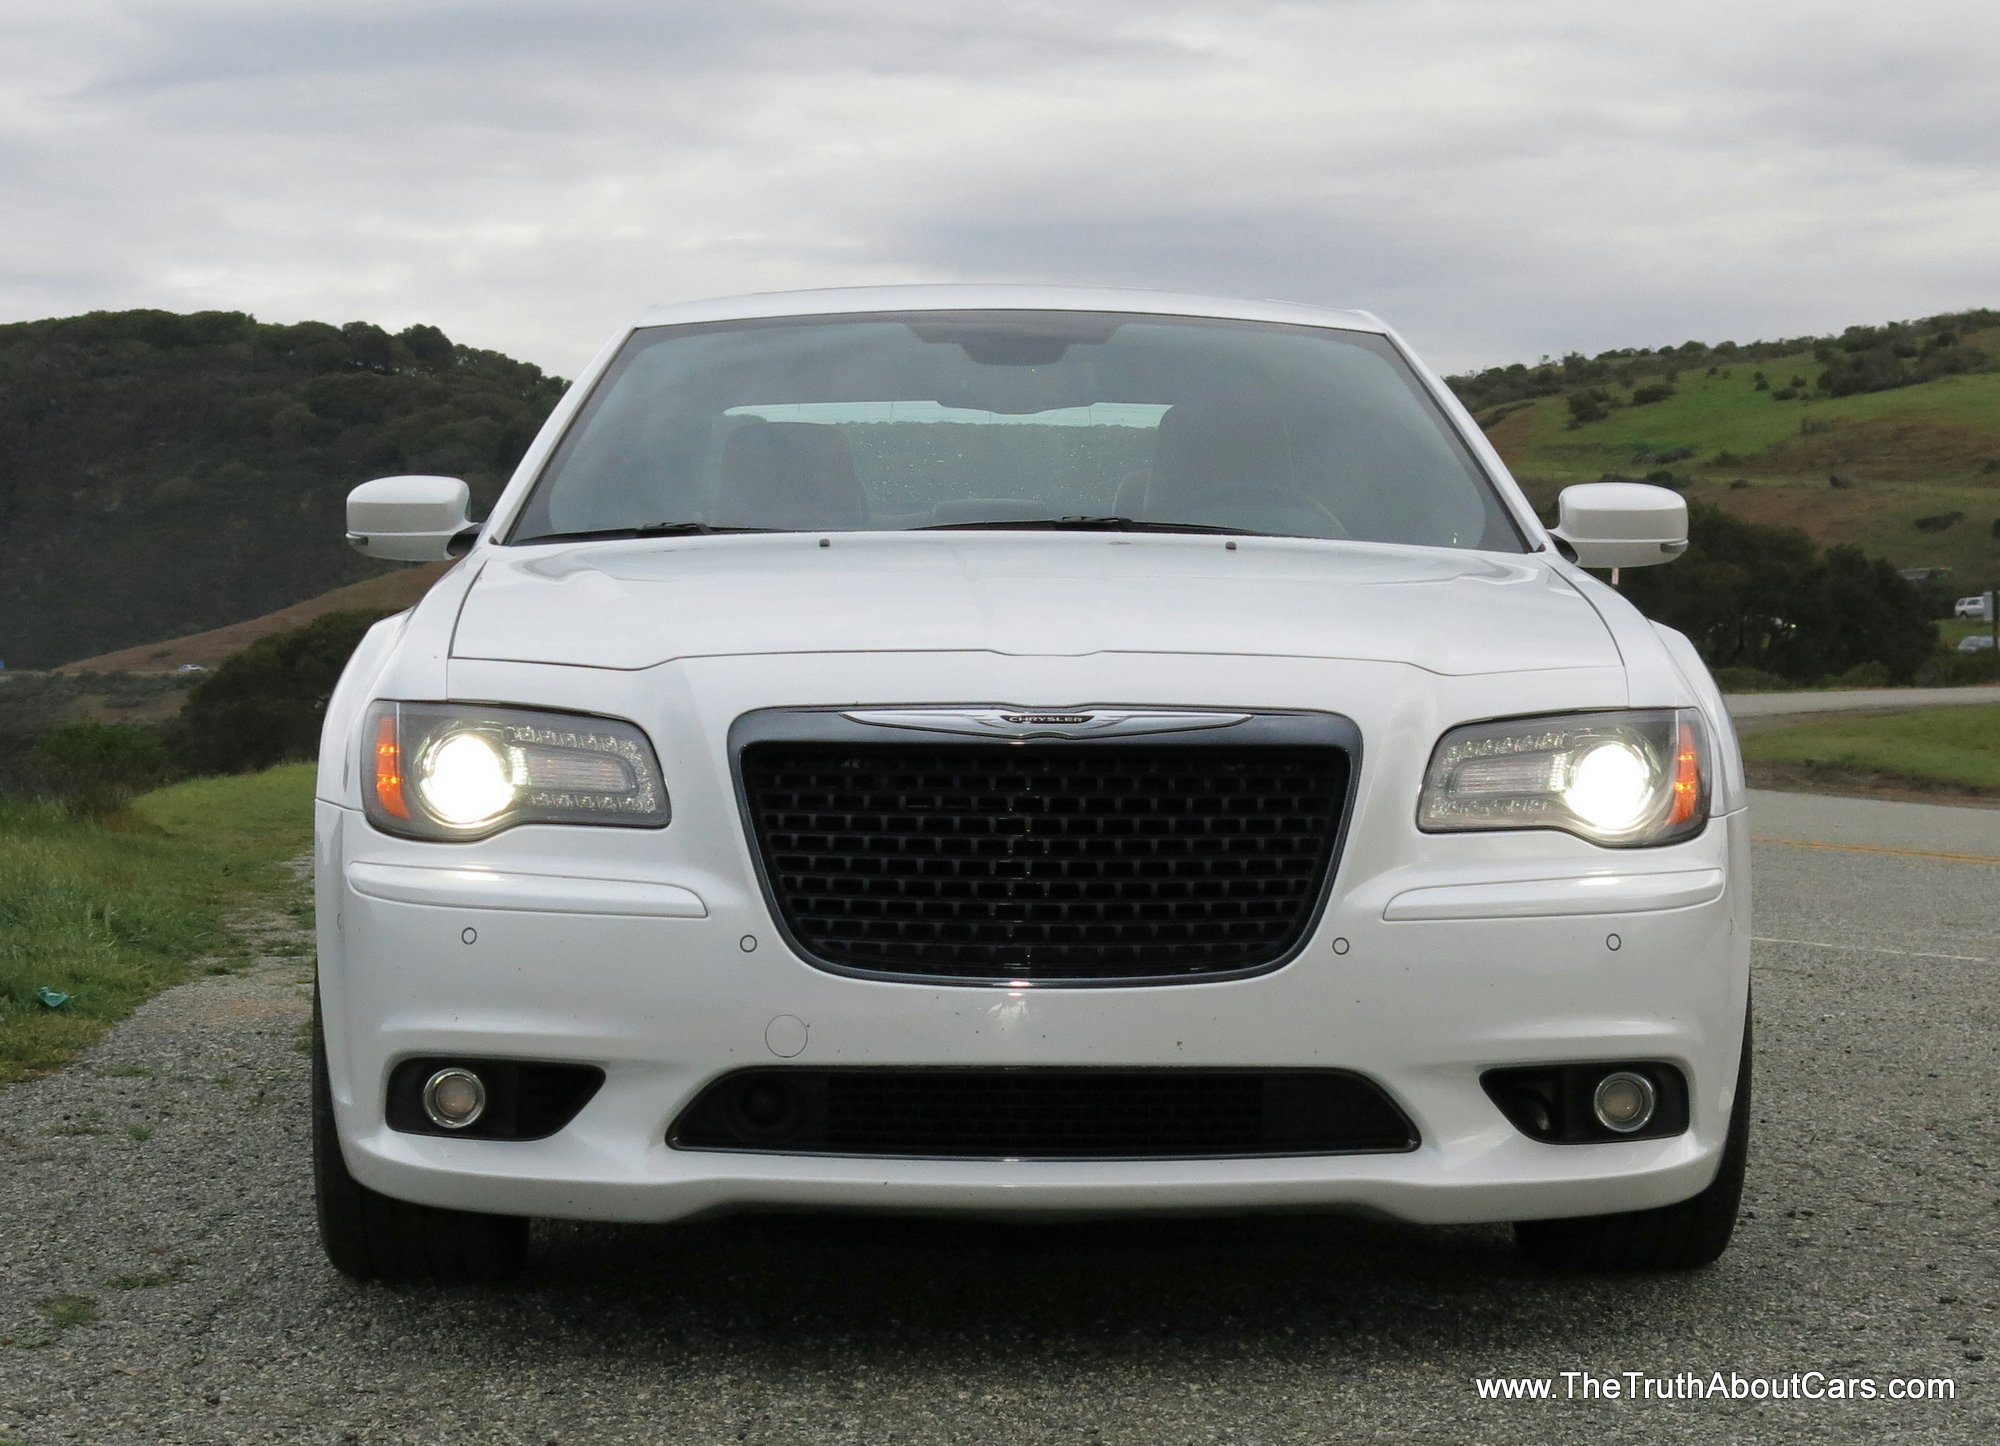 2013 chrysler 300 srt8 engine 470hp 6 4l 392 hemi picture courtesy. Cars Review. Best American Auto & Cars Review